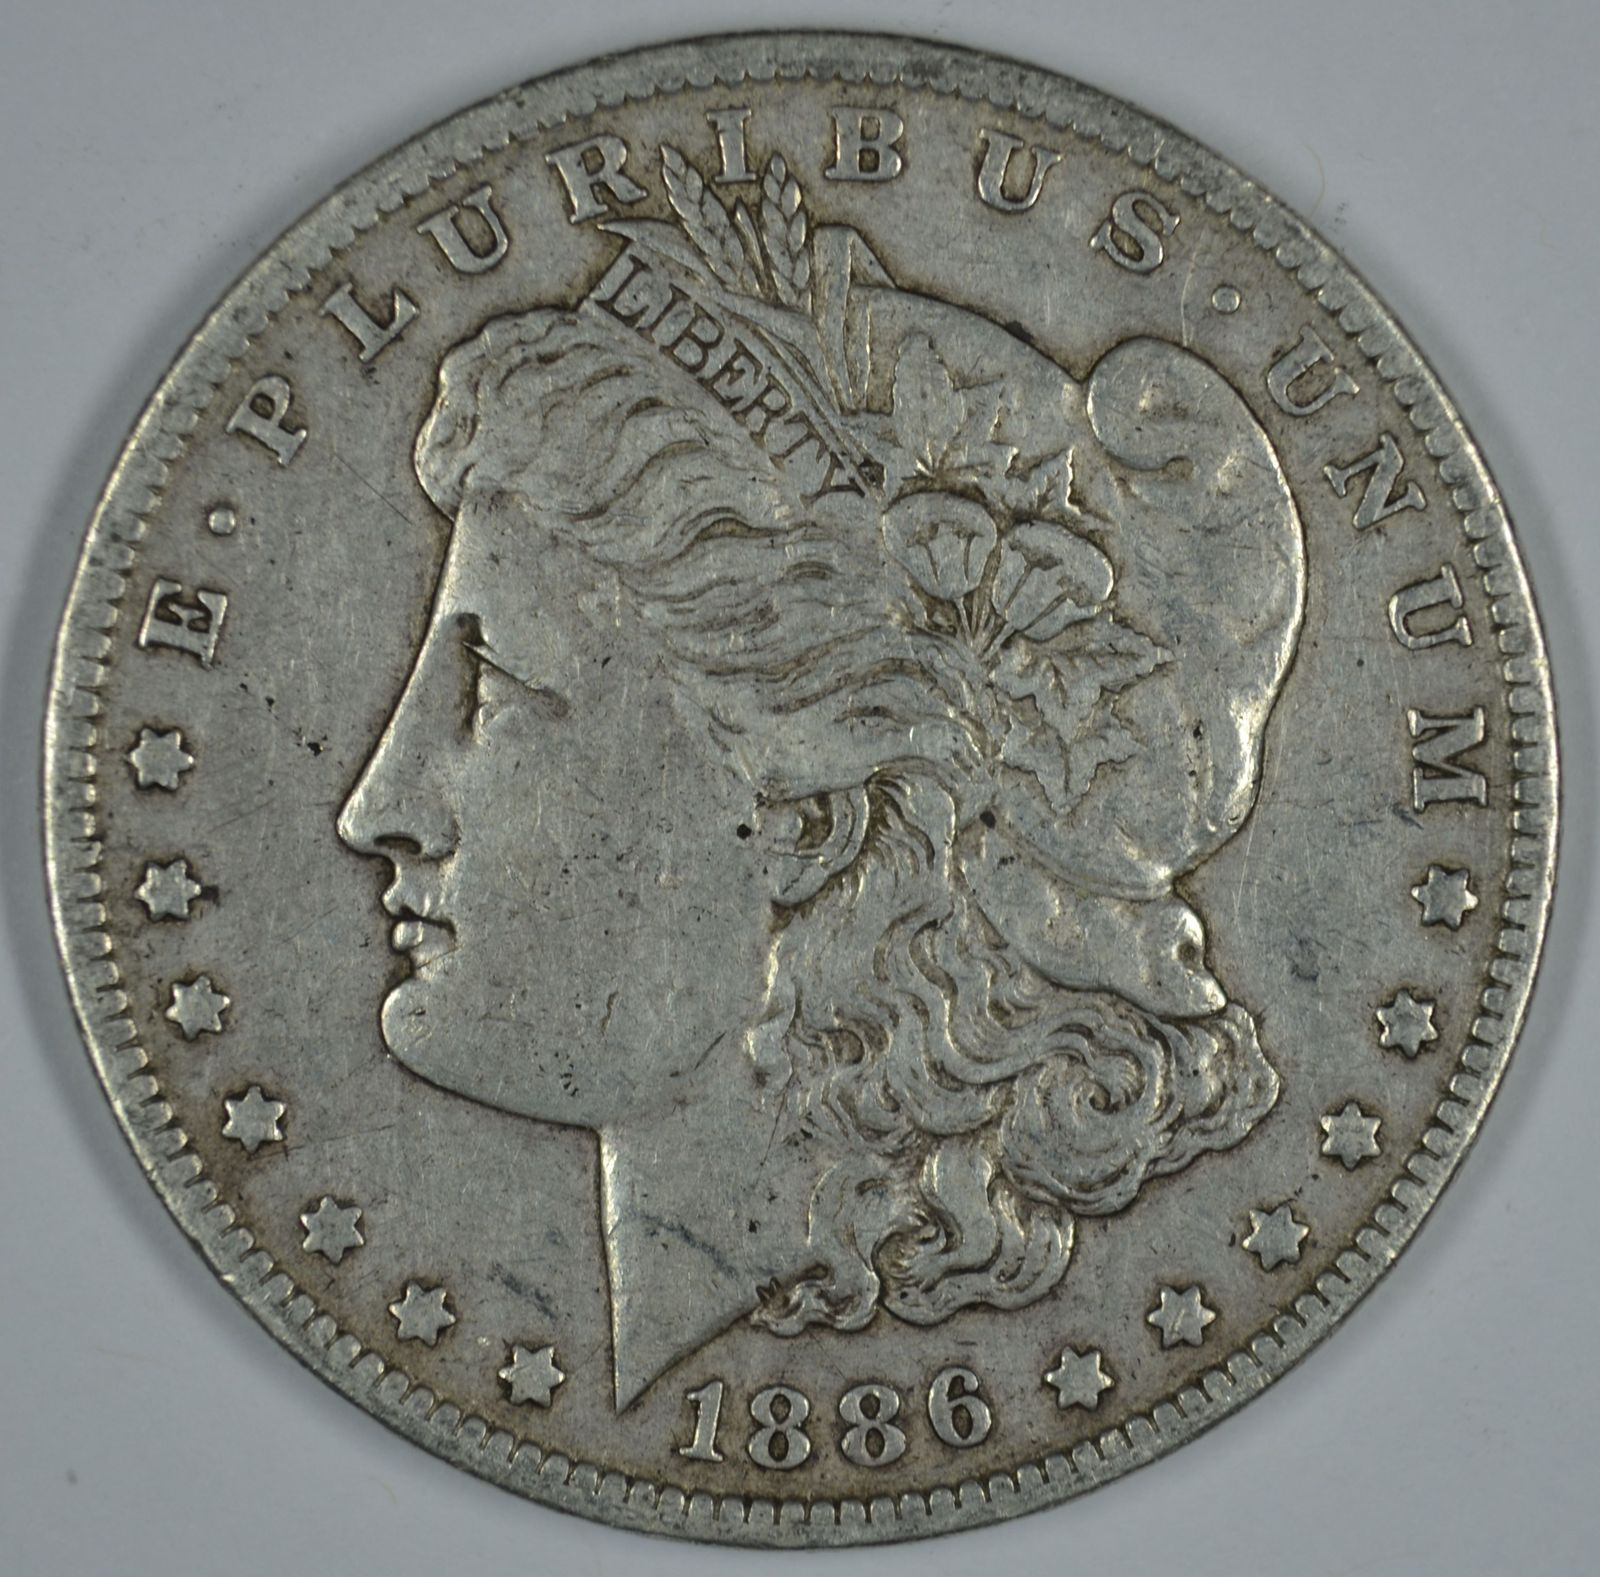 Primary image for 1886 O Morgan circulated silver dollar F details